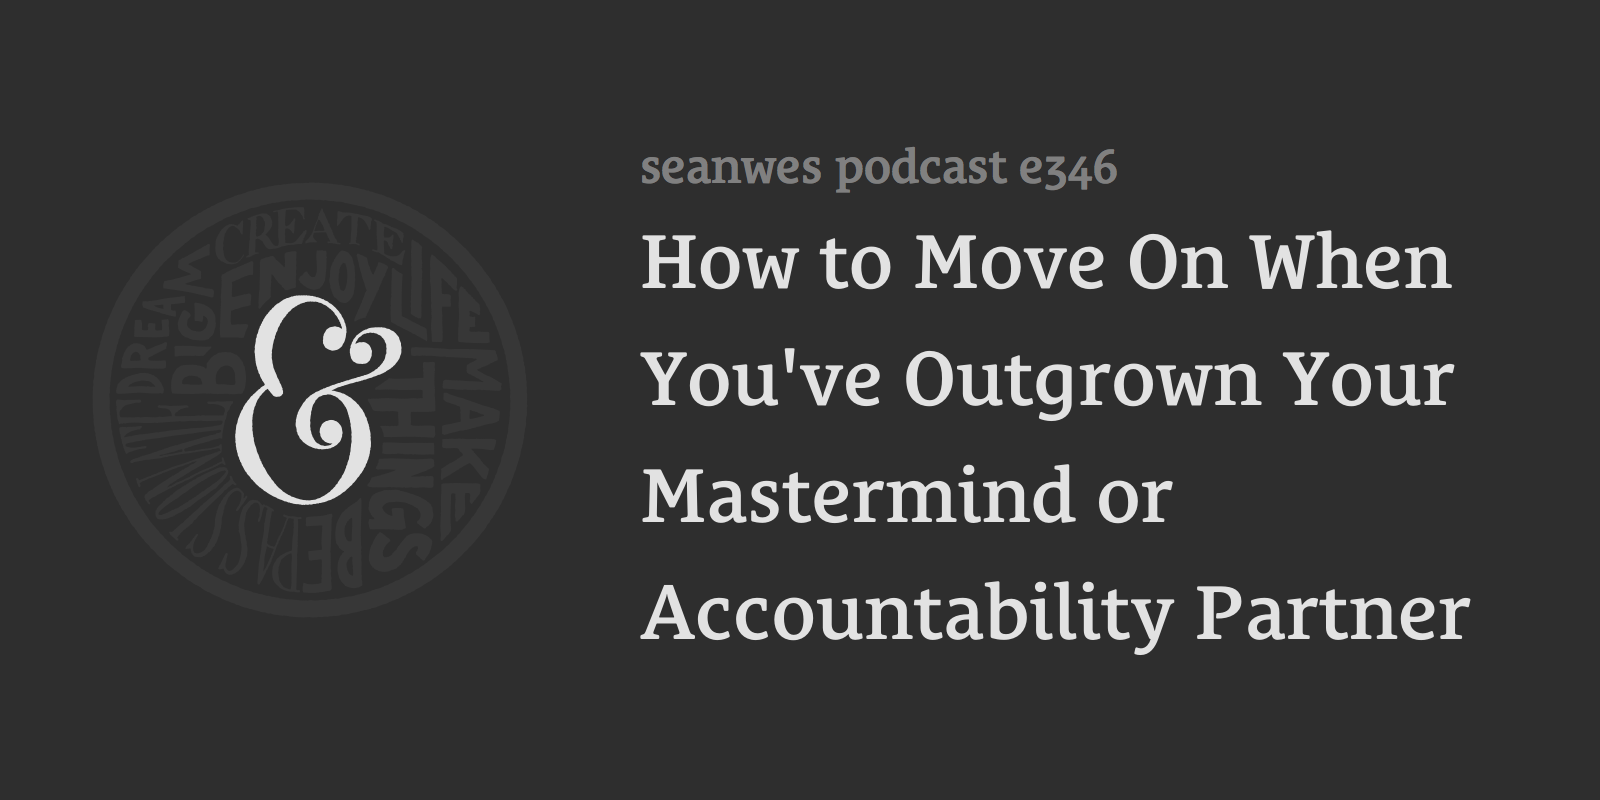 How to Move On When You've Outgrown Your Mastermind or Accountability Partner